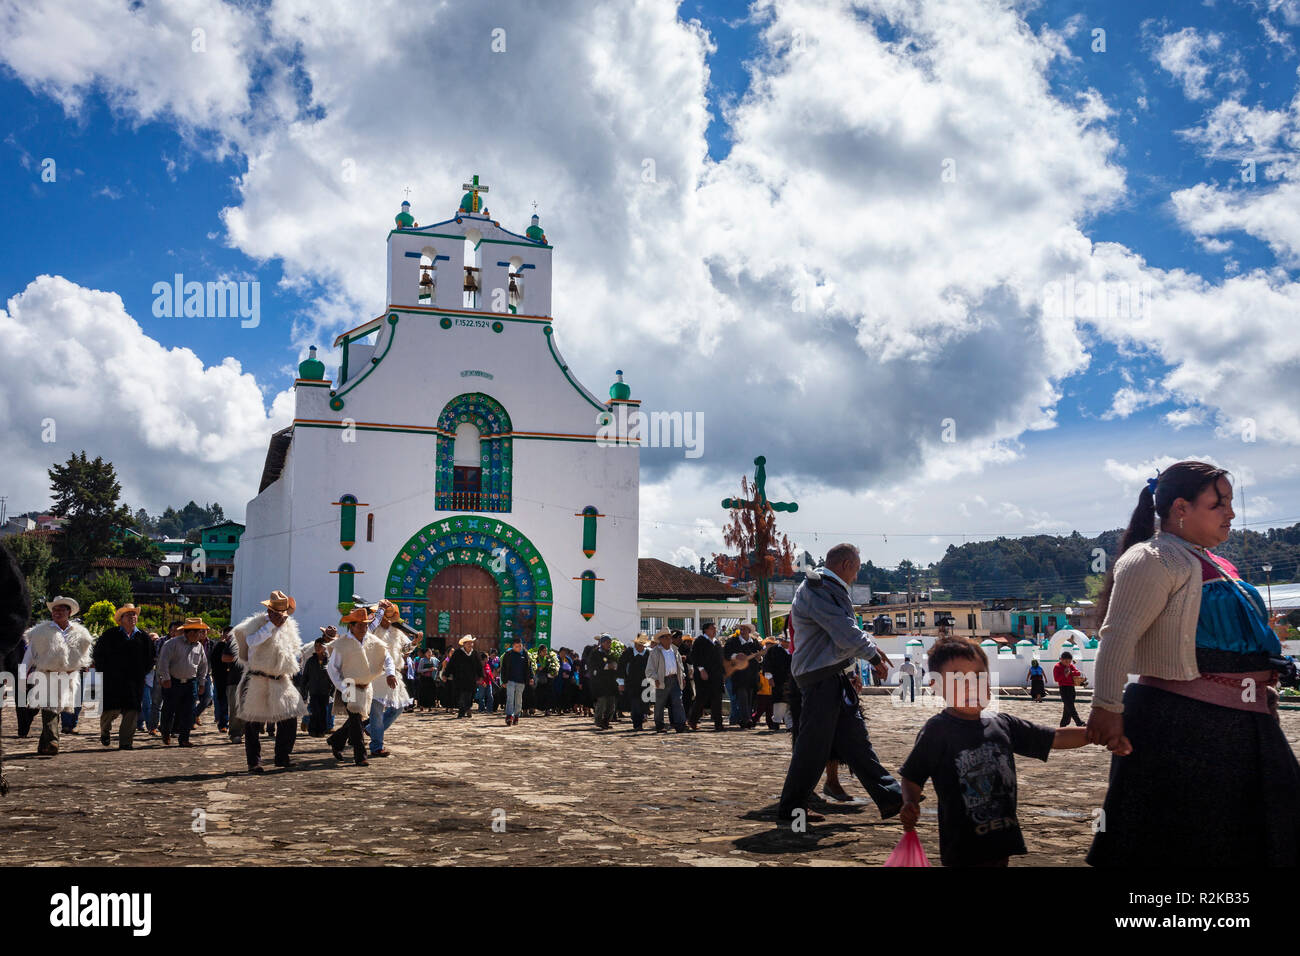 A funeral procesion crosses the plaza of Chamula, Chiapas, Mexico. - Stock Image